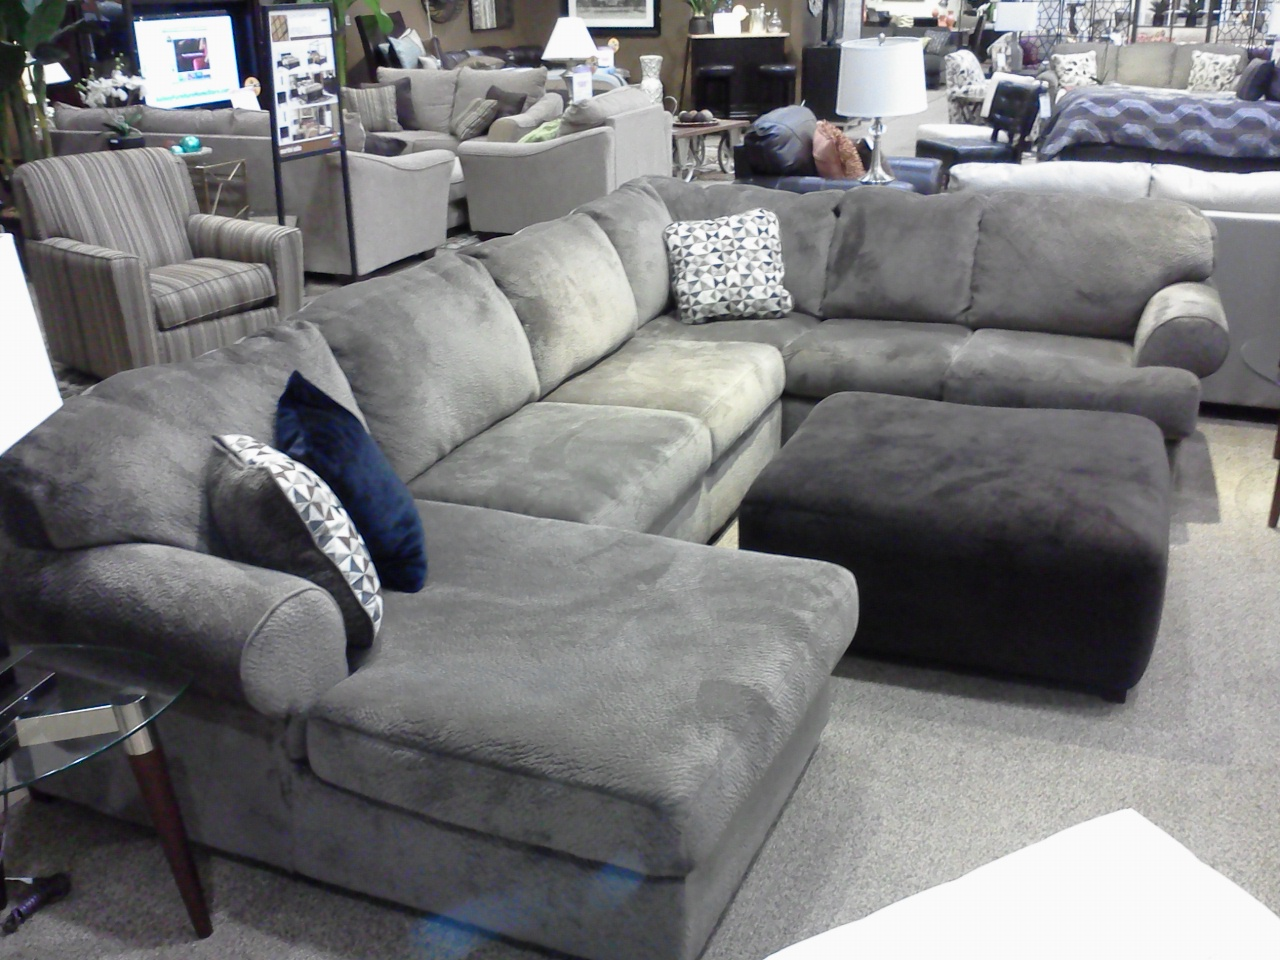 Interestingly enough this set looks similar to our current sectional that we bought from Havertyu0027s a few years ago (will be going in the Family Room). : ashley furniture jessa sectional - Sectionals, Sofas & Couches